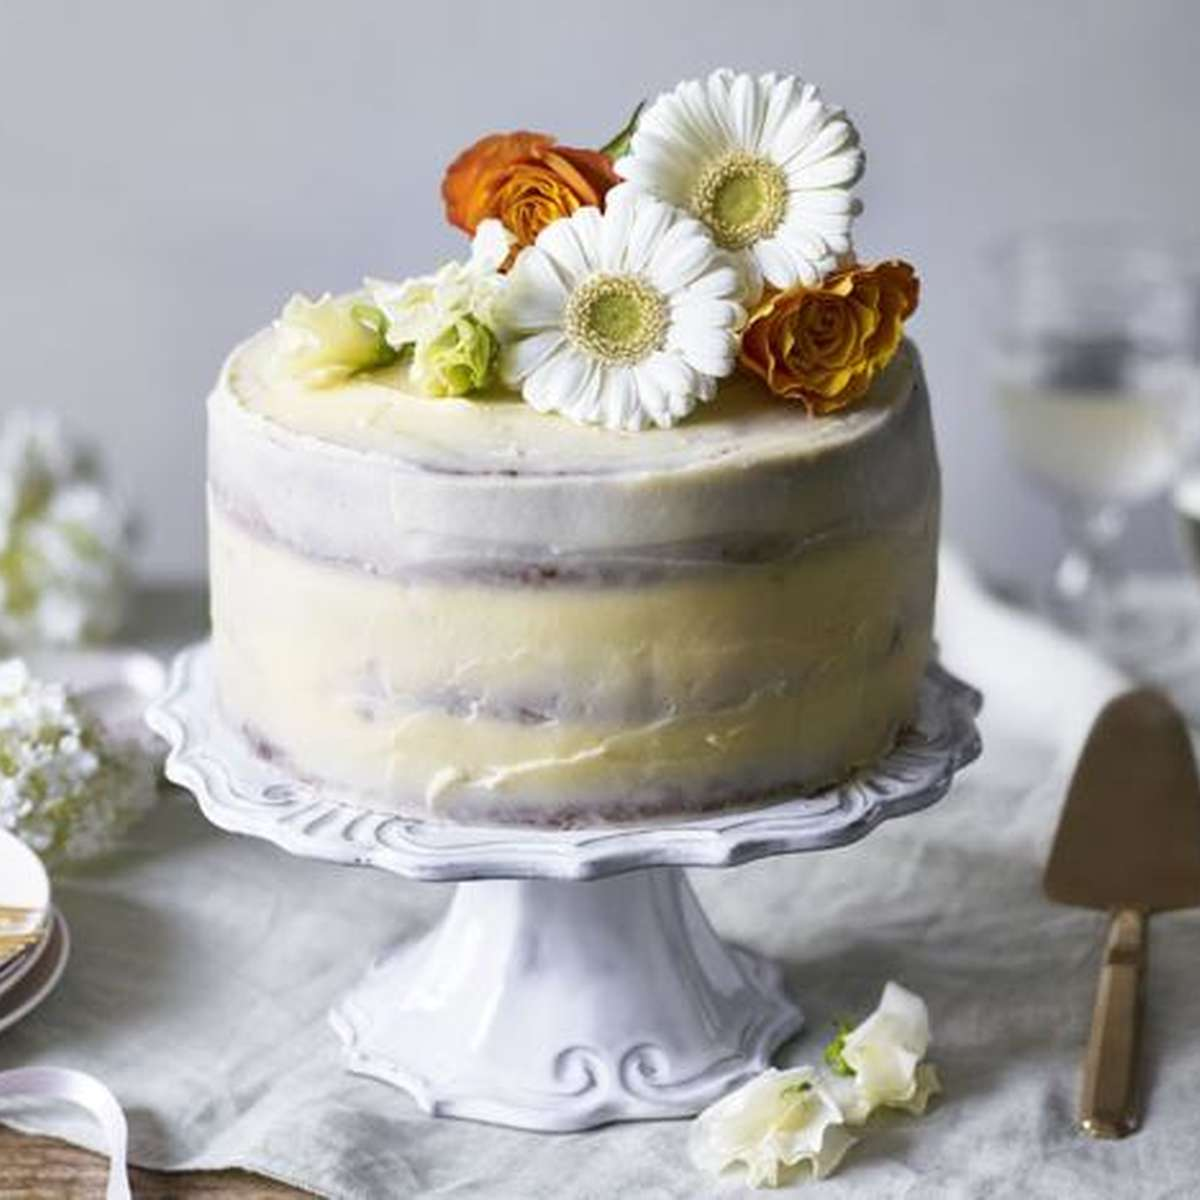 lemon elderflower cake inspired by royal wedding via BBC